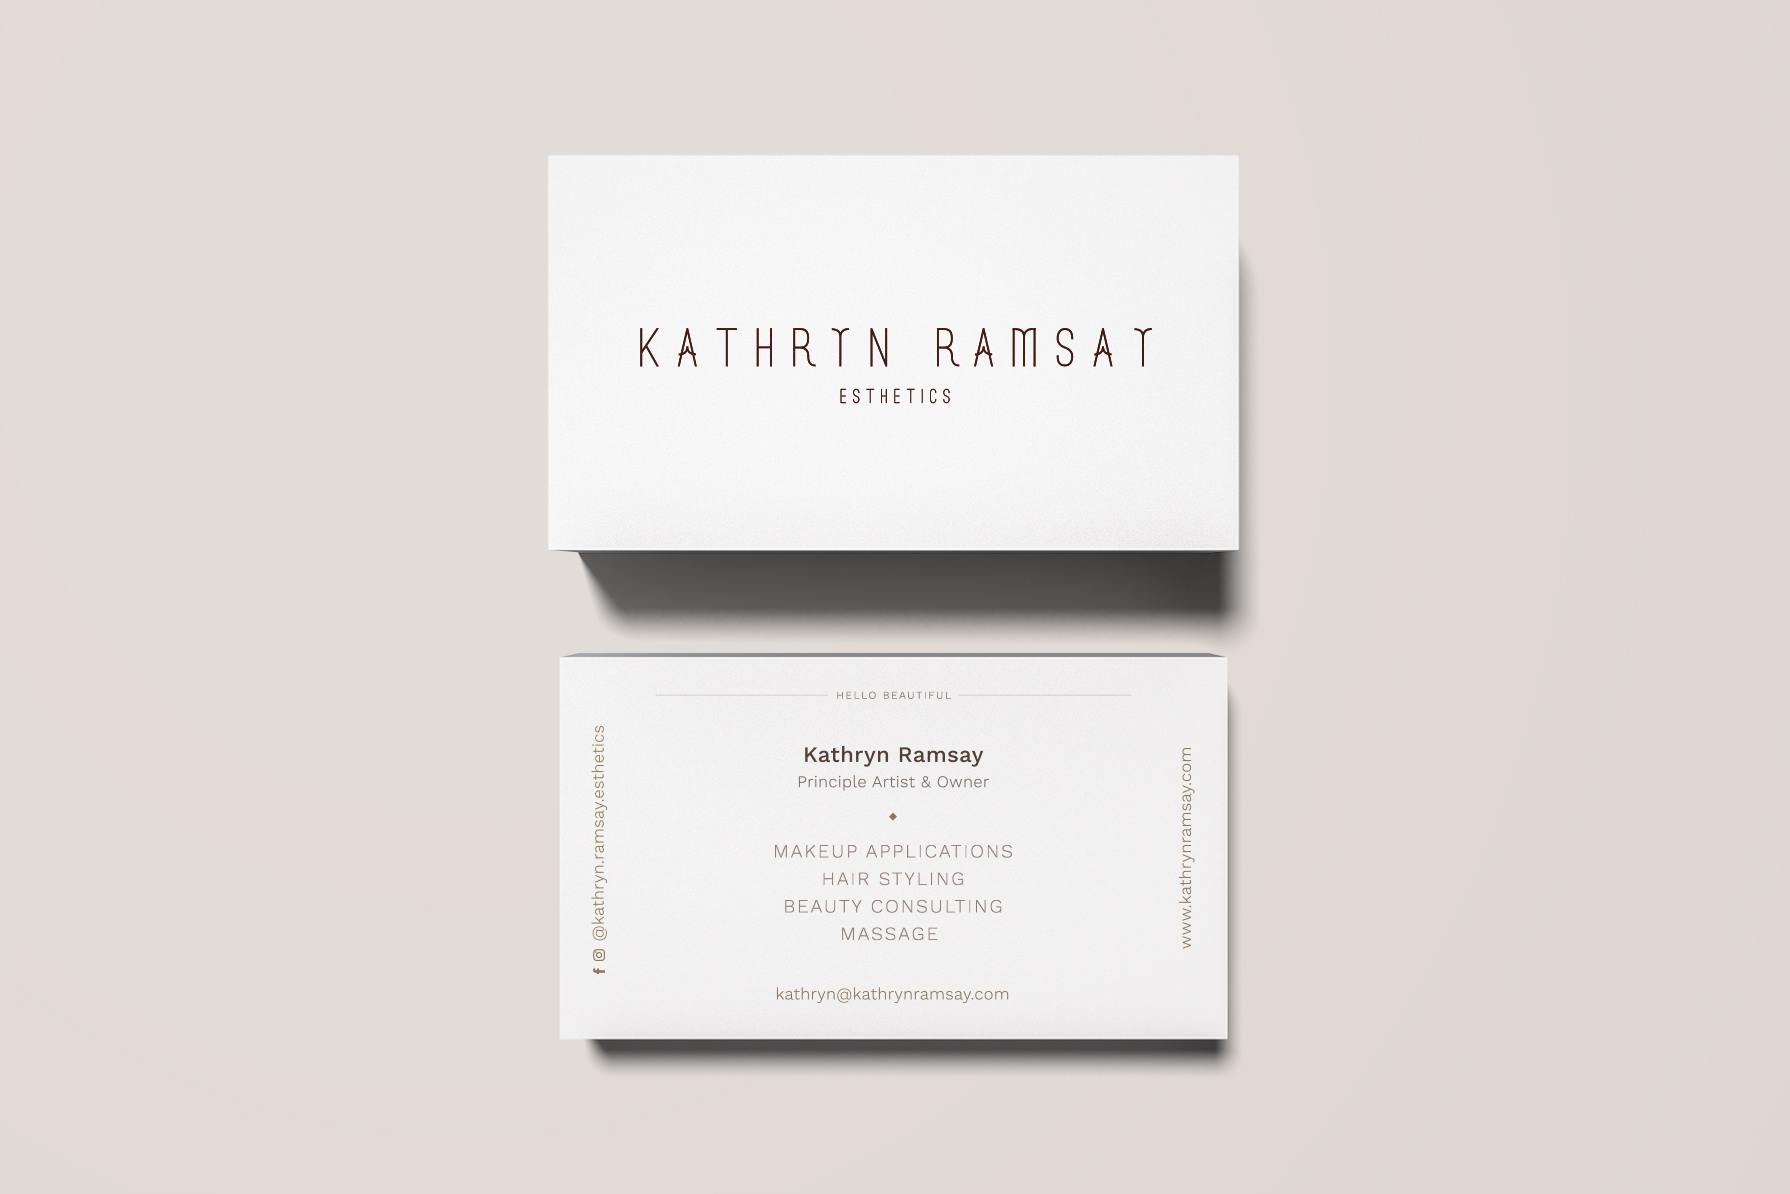 Kathryn Ramsay Esthetics - Business Card - Art Direction and Branding